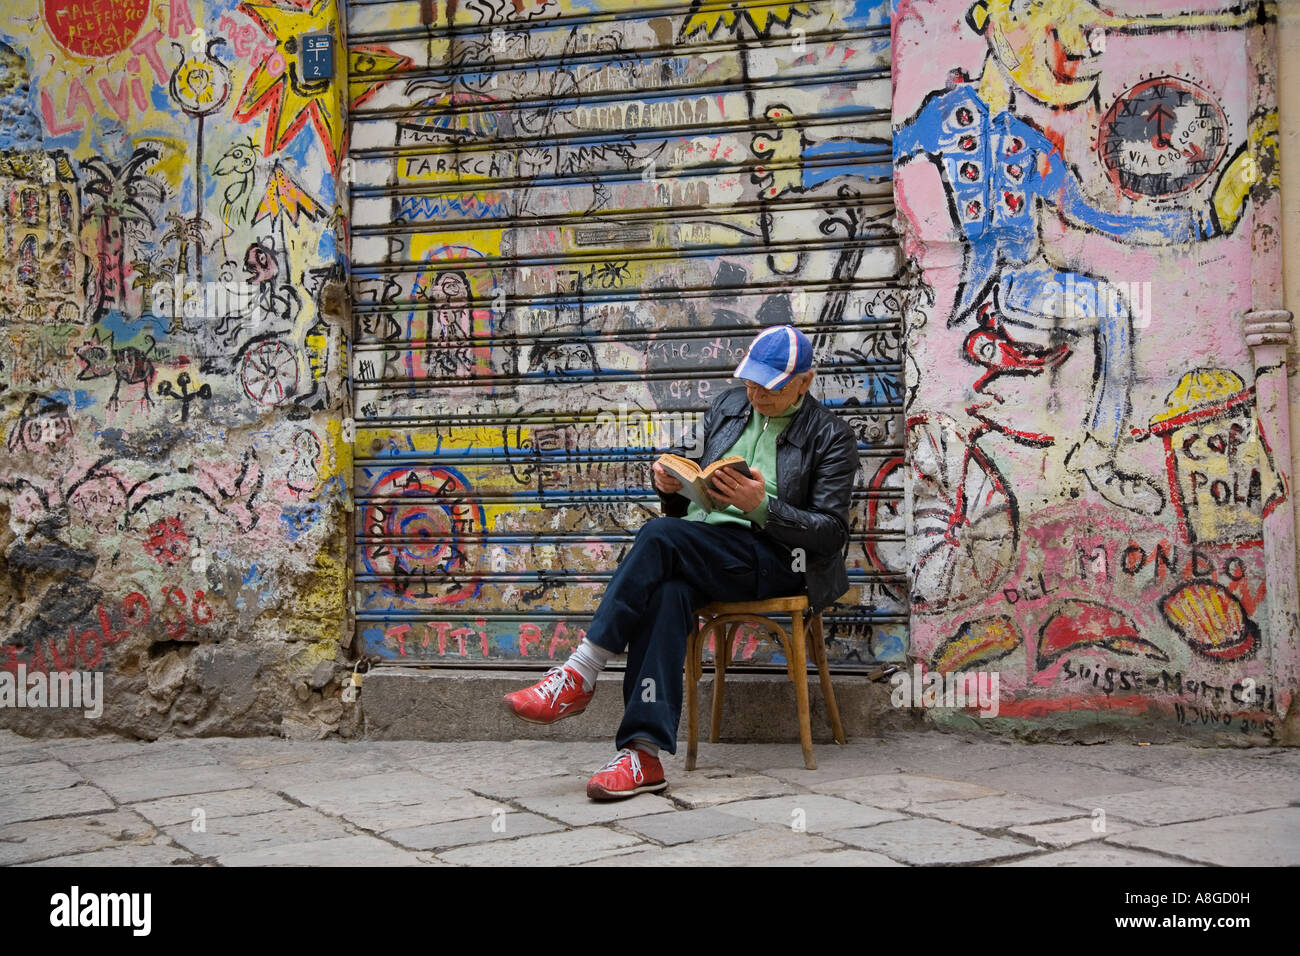 Graffiti wall reading - Man Reading Book In Front Of Graffiti Covered Wall On Neighborhood Street Via Dello Orologio Palermo Sicily Italy